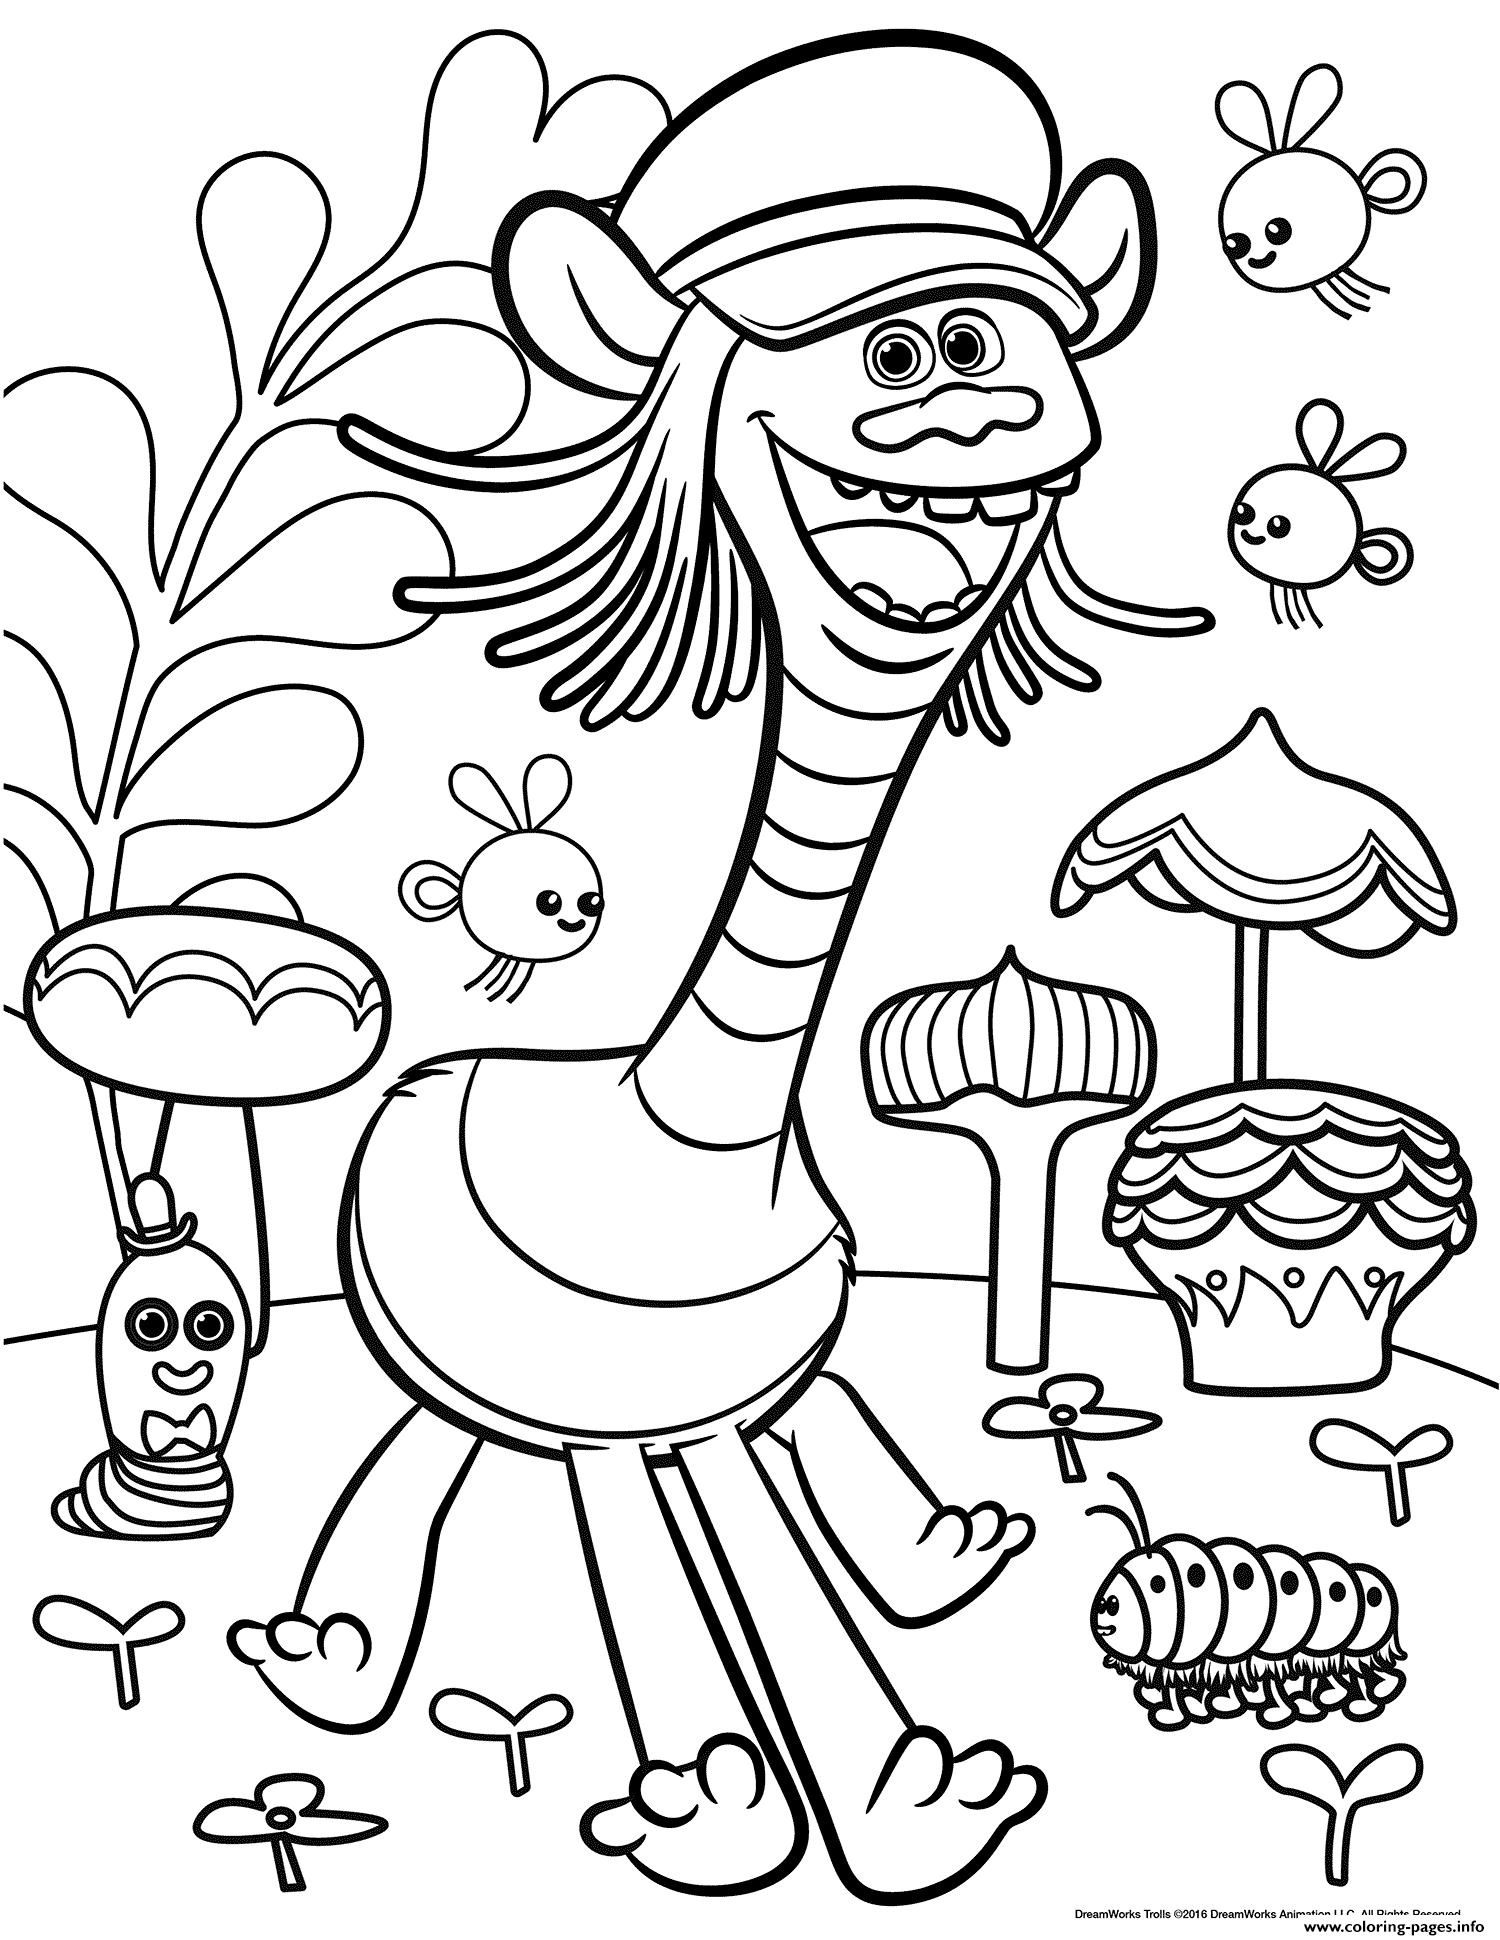 Charming Print Trolls Movie Color Troll Coloring Pages